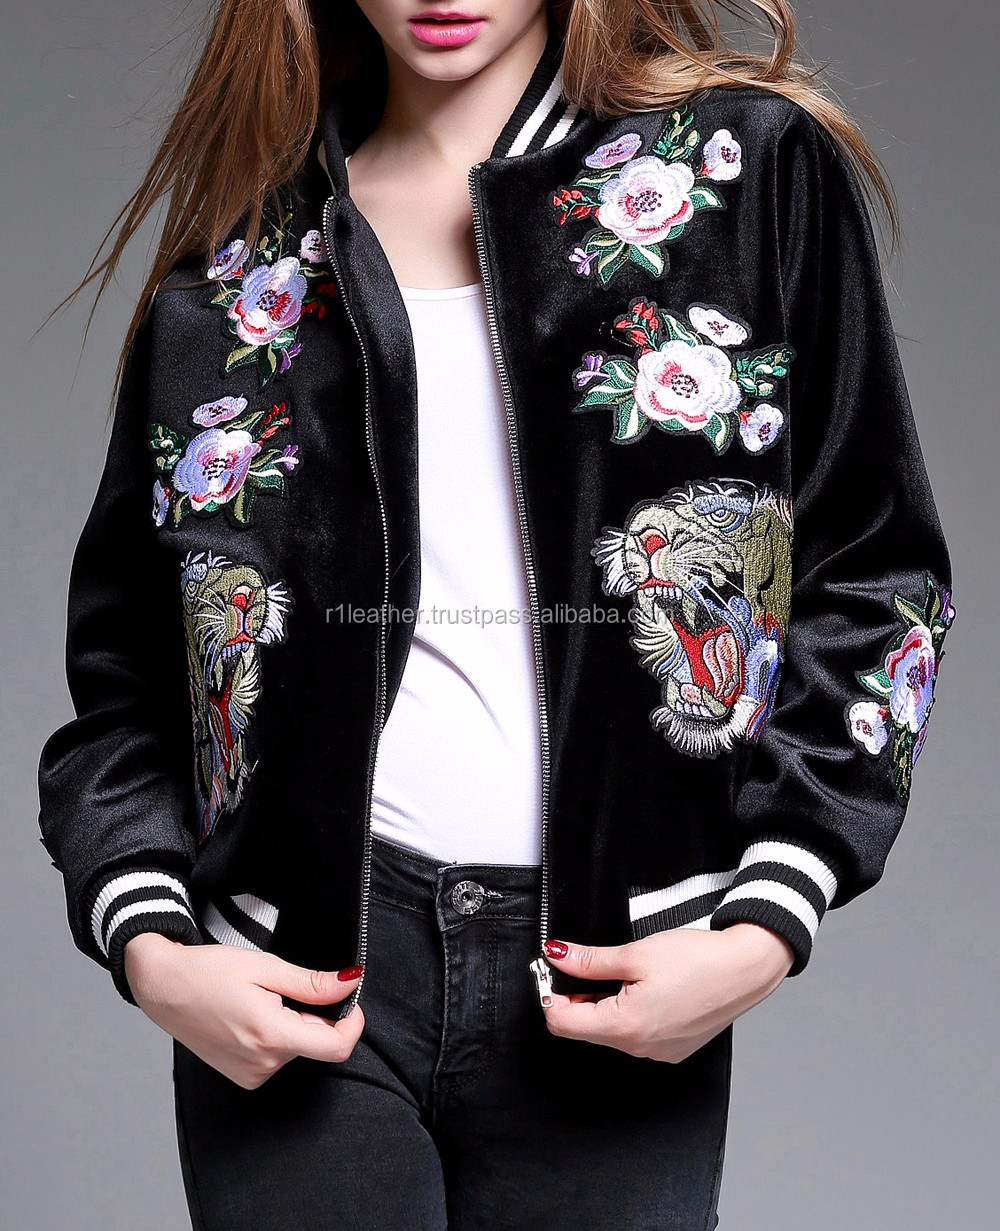 Embroidery or printing high quality OEM service womens varsity jacket casual slim fit jacket